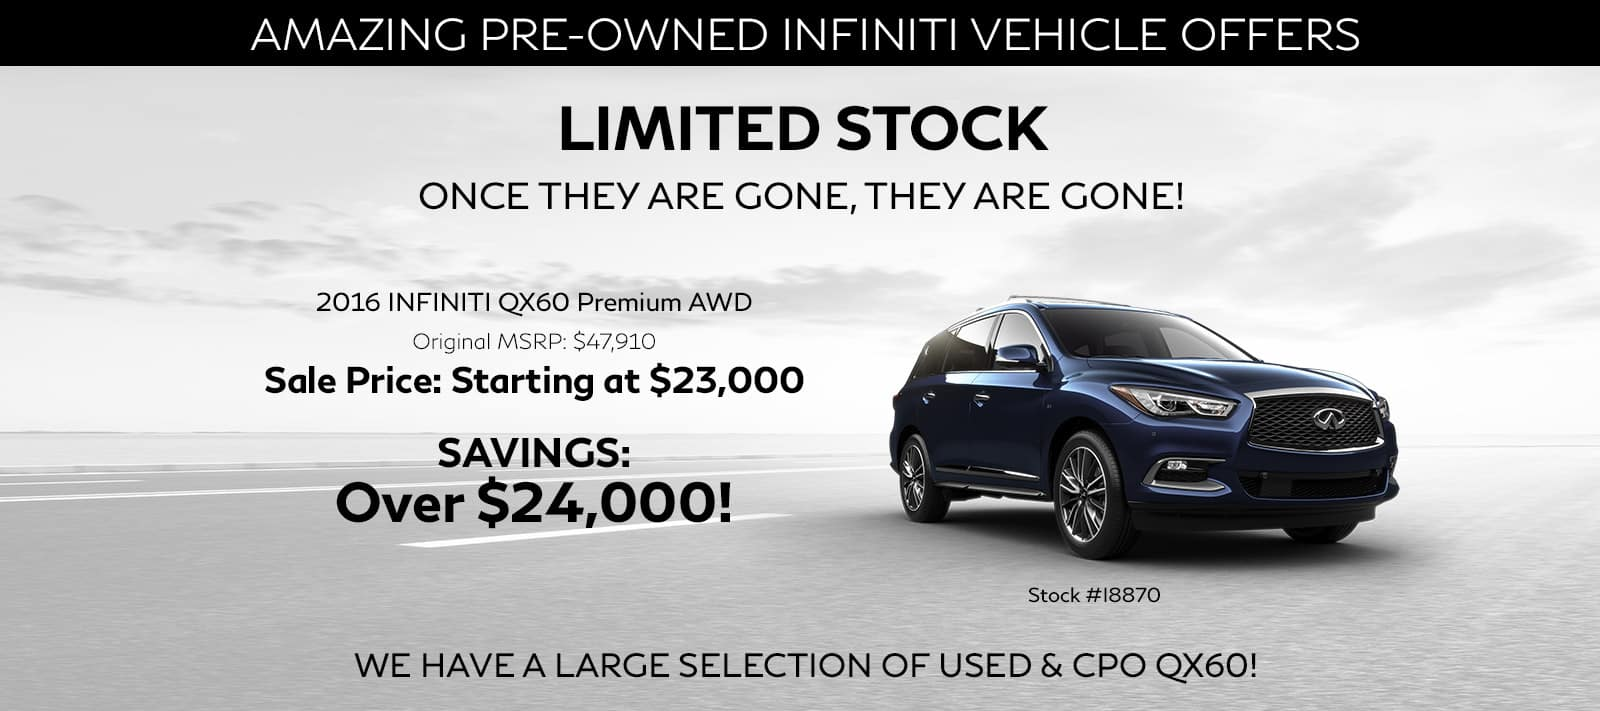 Amazing Pre-Owned QX60 Vehicle Offers — Limited Stock - Once They Are Gone, They Are Gone! Offer : 2016 QX60 QX60 Premium AWD Original MSRP: $47,910 Sale Price: Starting at $23,000 Savings: Over $24,000! Image of the Vehicle, Paired With Small Text: Stock #I8870 We Have a Large Selection of Used & CPO QX60!